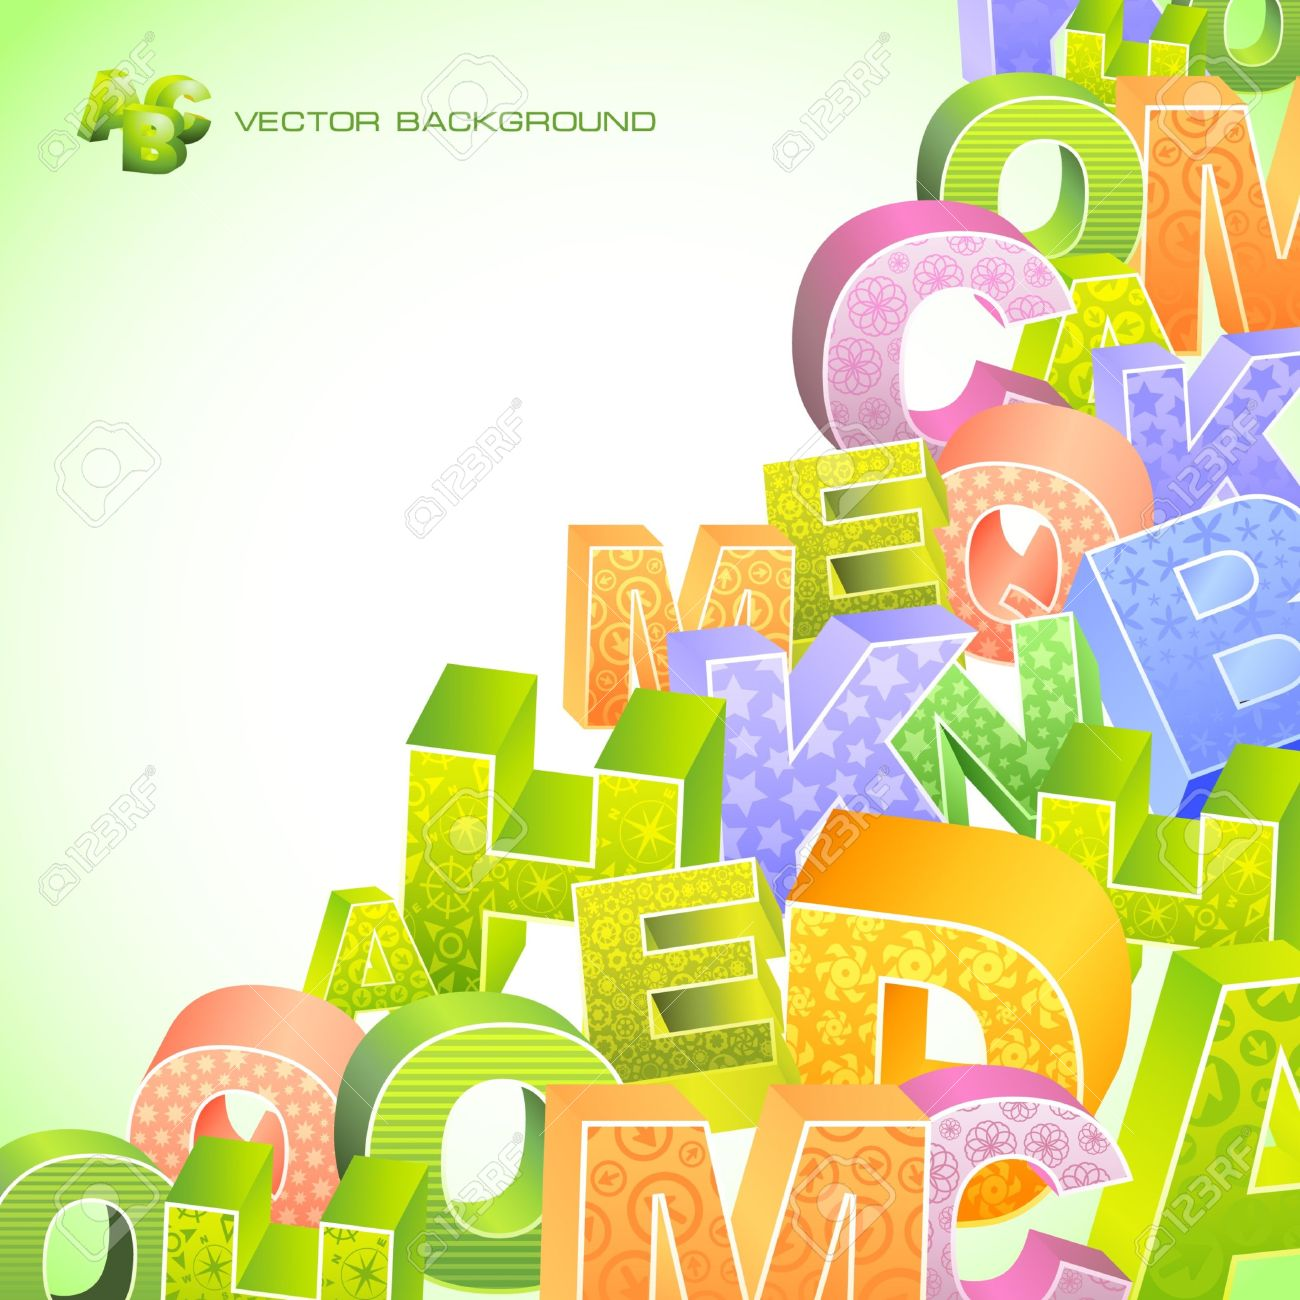 Abstract Background With Letter Mix. Royalty Free Cliparts.